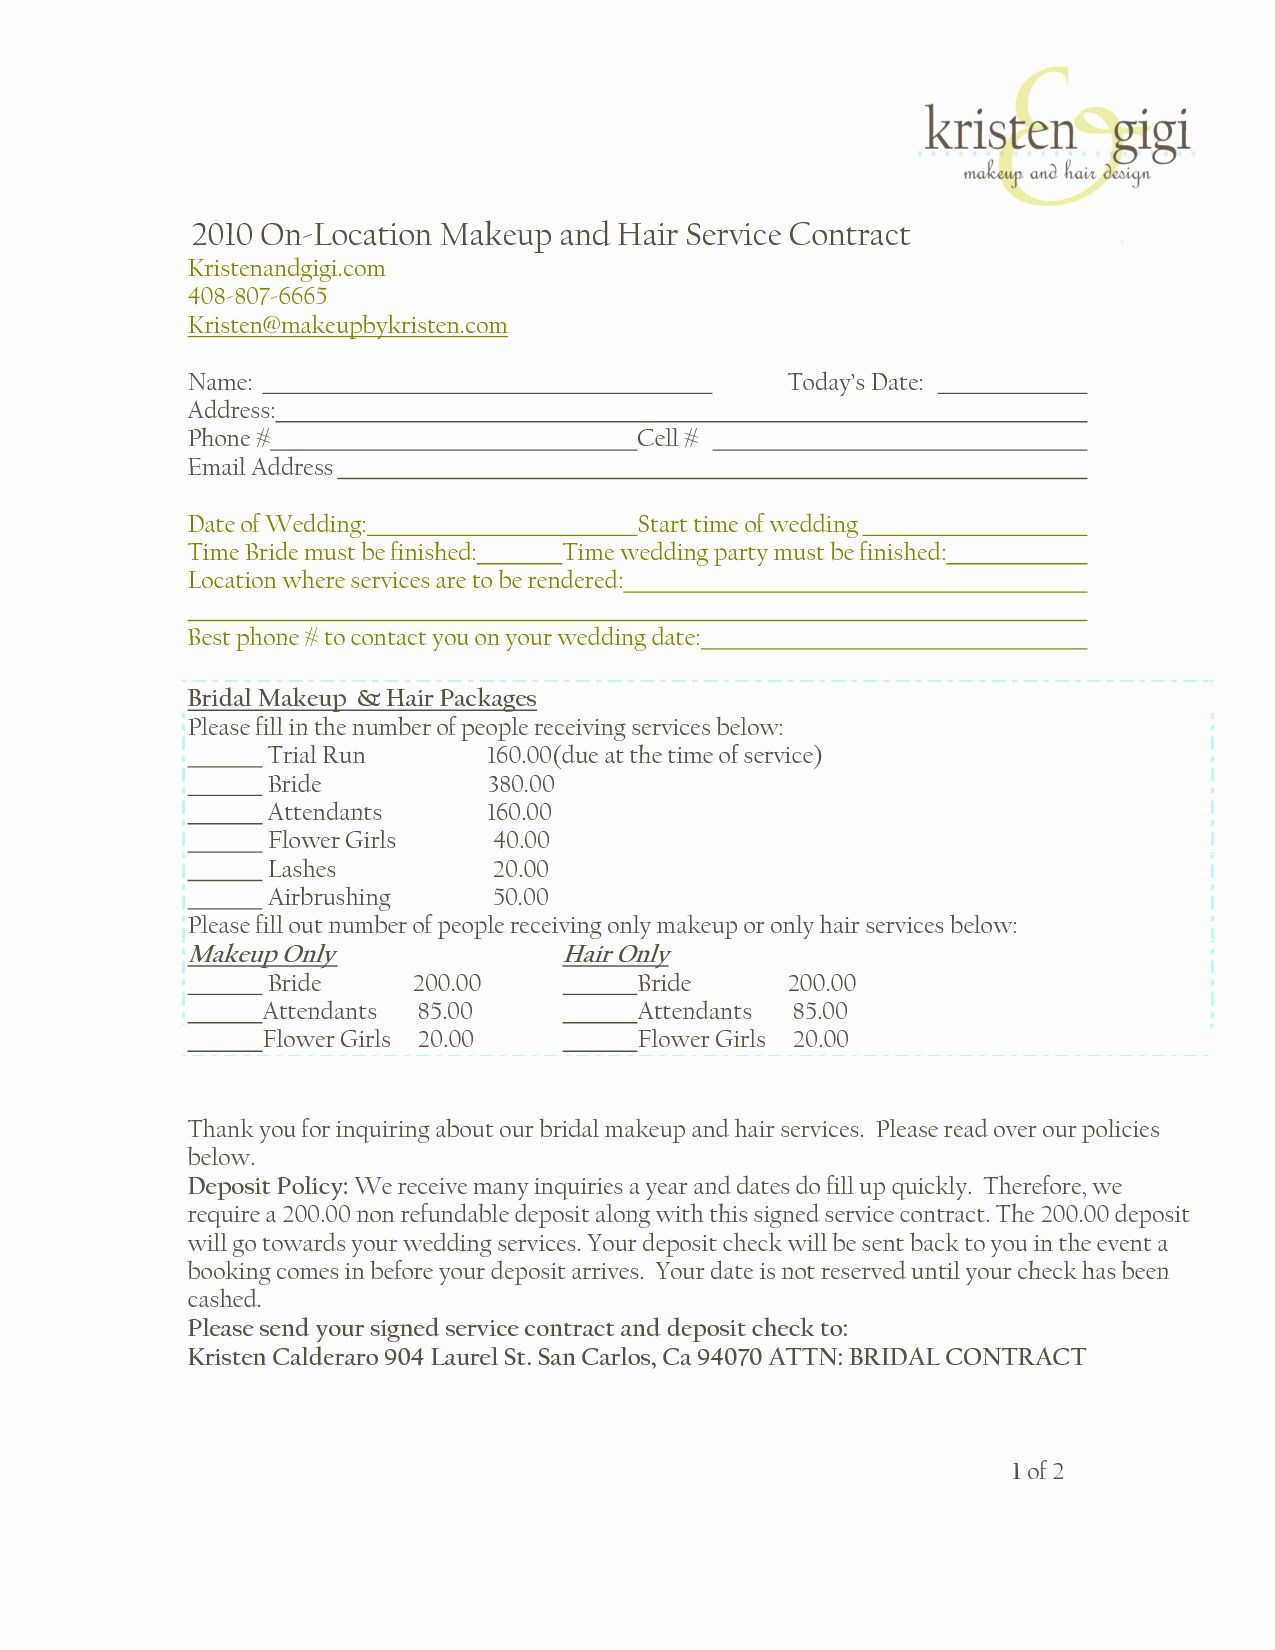 Freelance Makeup Artist Contract Template Shooters